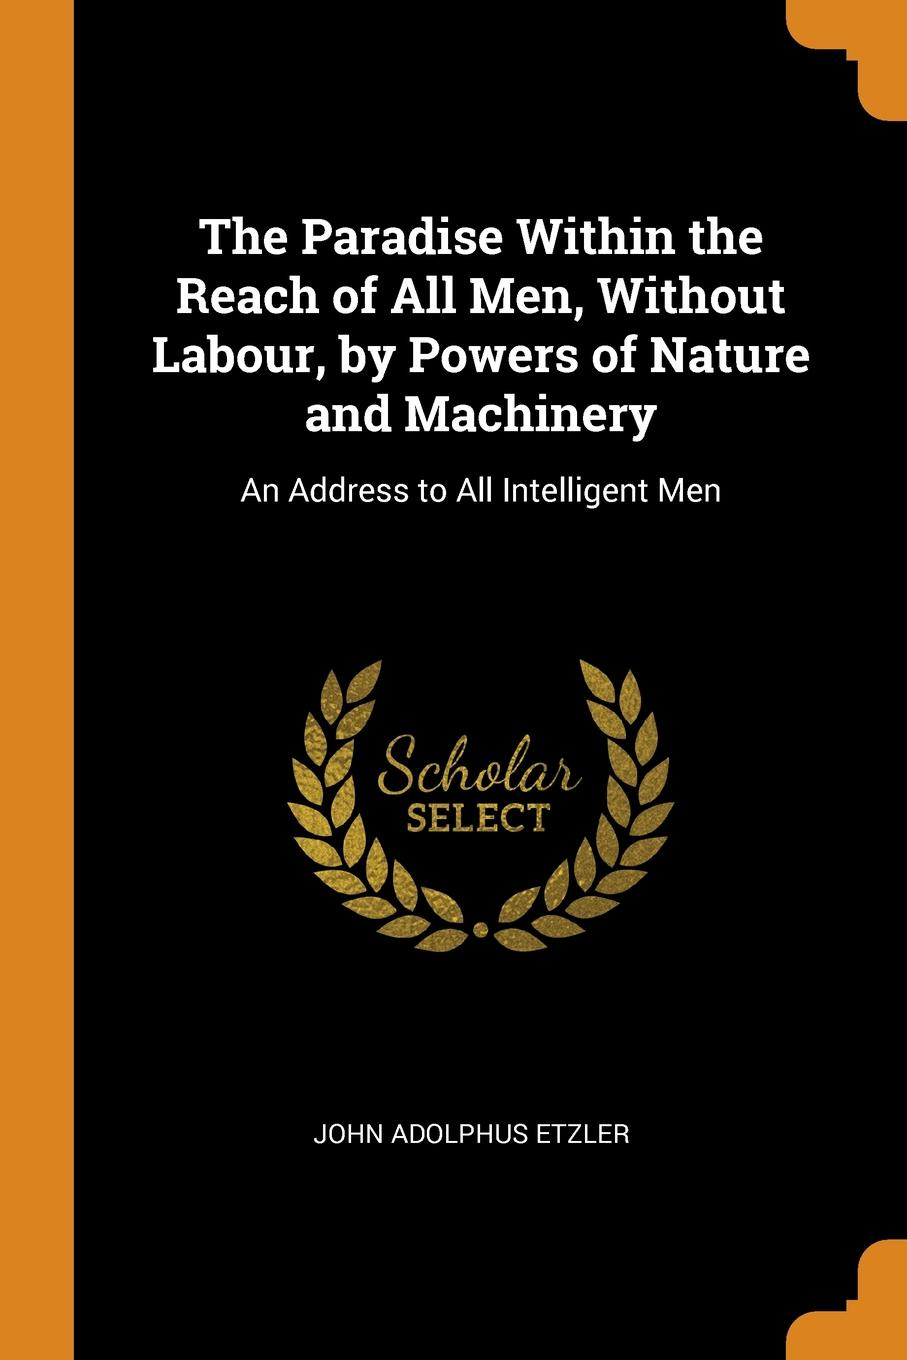 лучшая цена John Adolphus Etzler The Paradise Within the Reach of All Men, Without Labour, by Powers of Nature and Machinery. An Address to All Intelligent Men